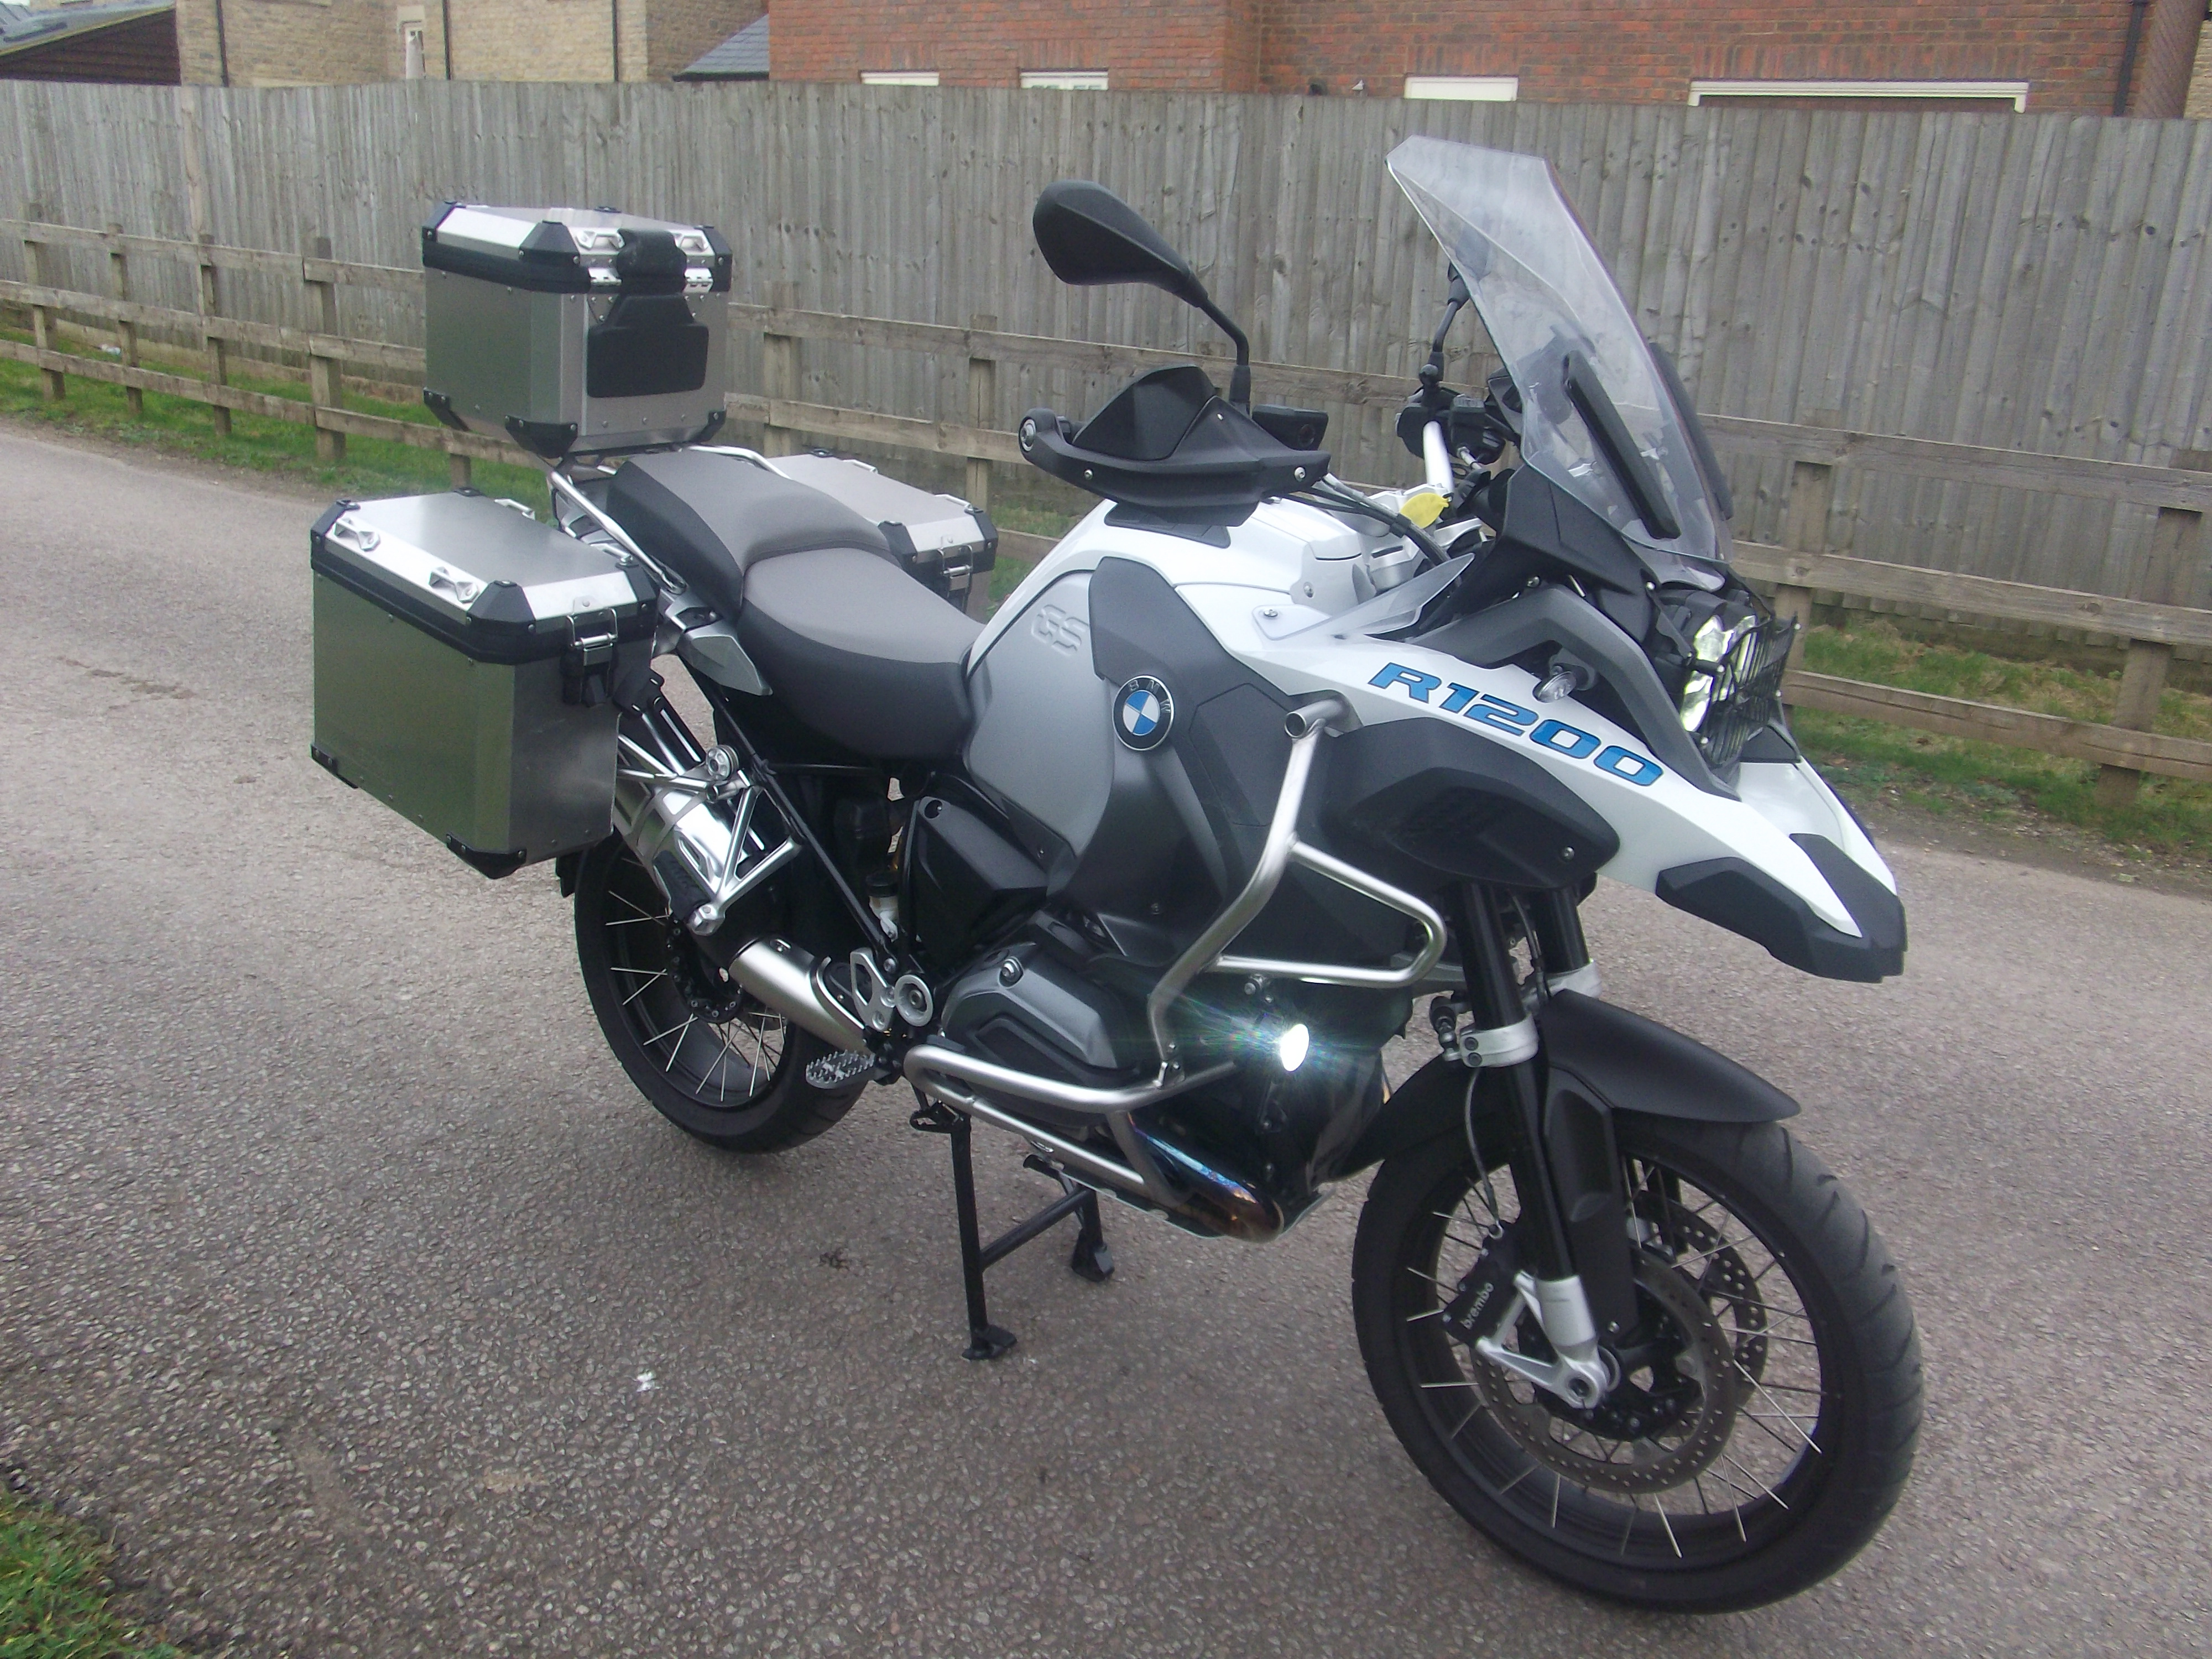 BMW R 1200 GSA LC TE - The Motorcycle Exchange